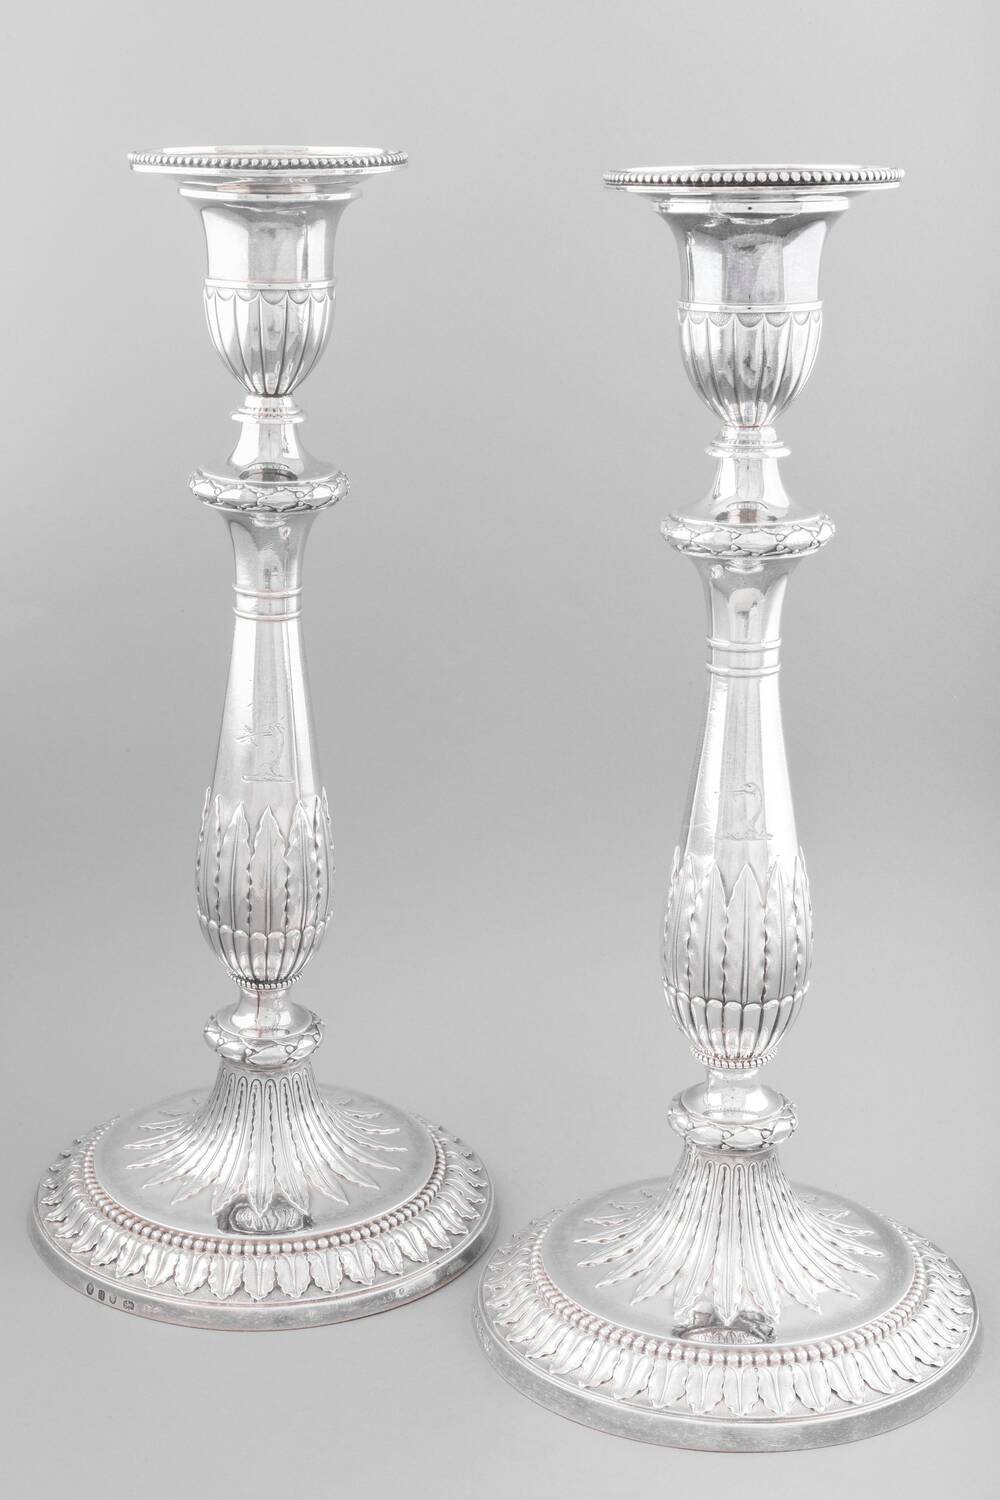 A pair of ornate silver candlesticks are displayed against a plain grey background. They have embossed decoration all around.